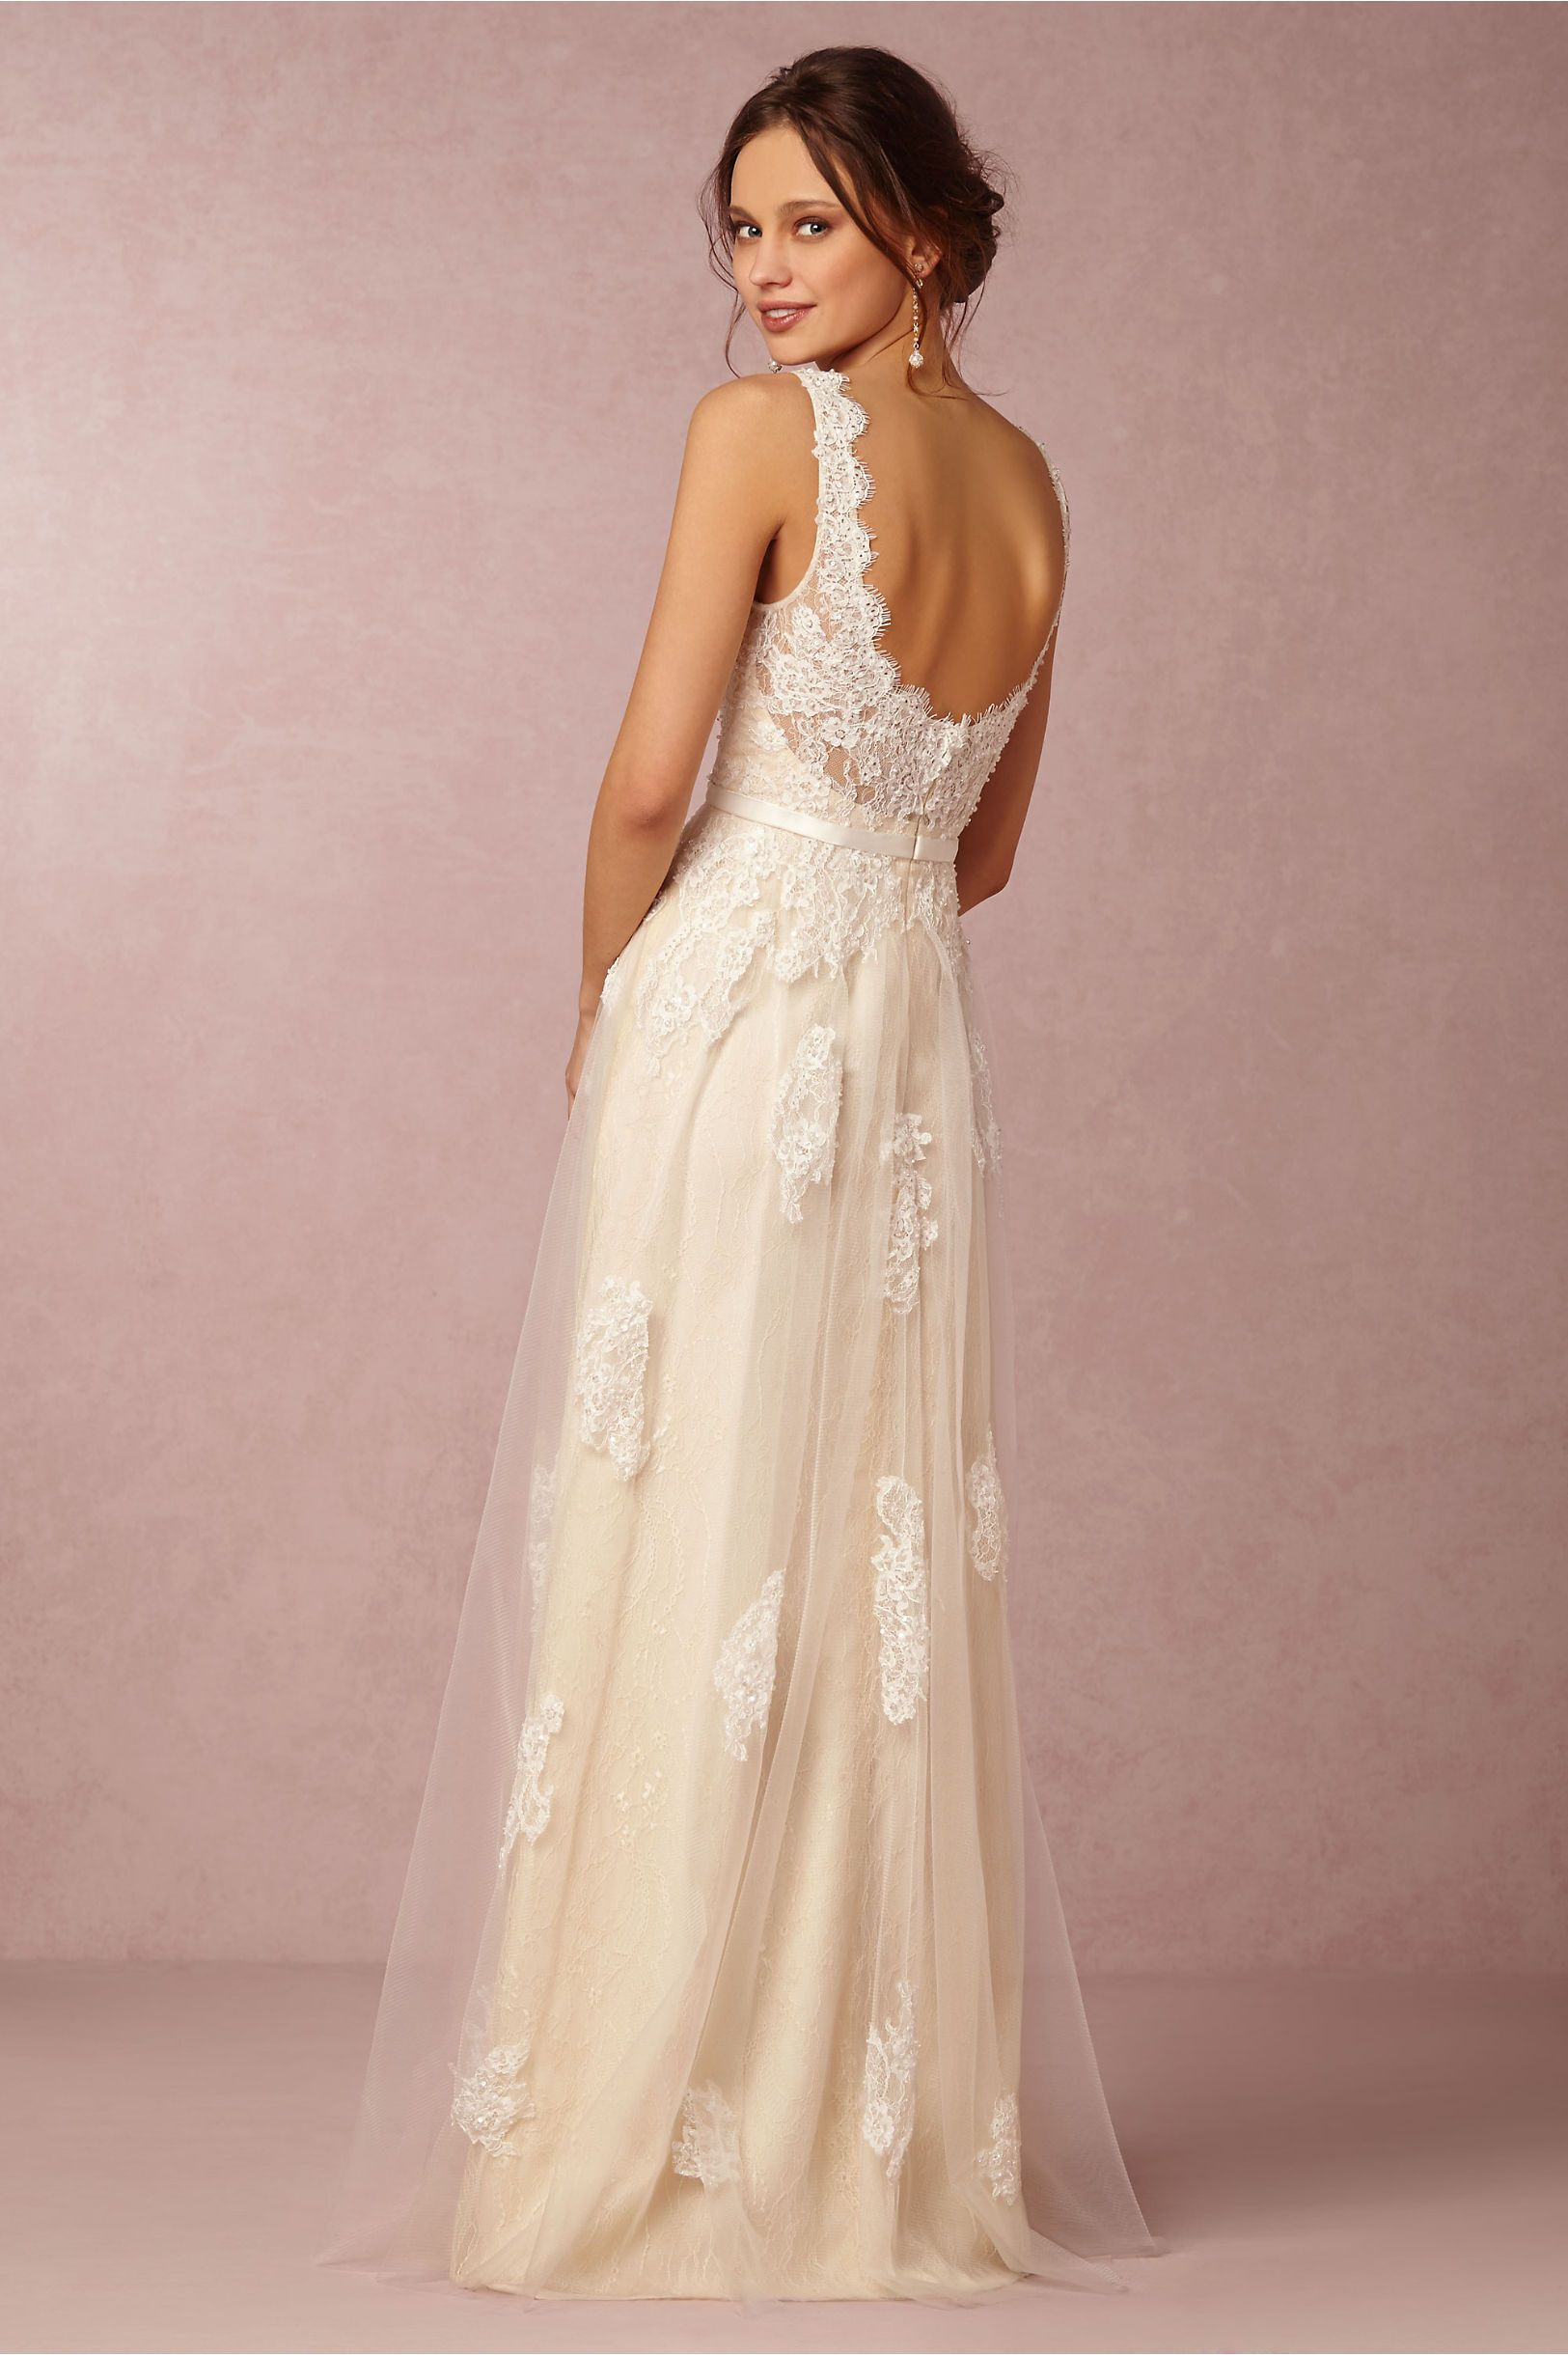 Georgia Gown in Bride Wedding Dresses at BHLDN | Wedding | Pinterest ...